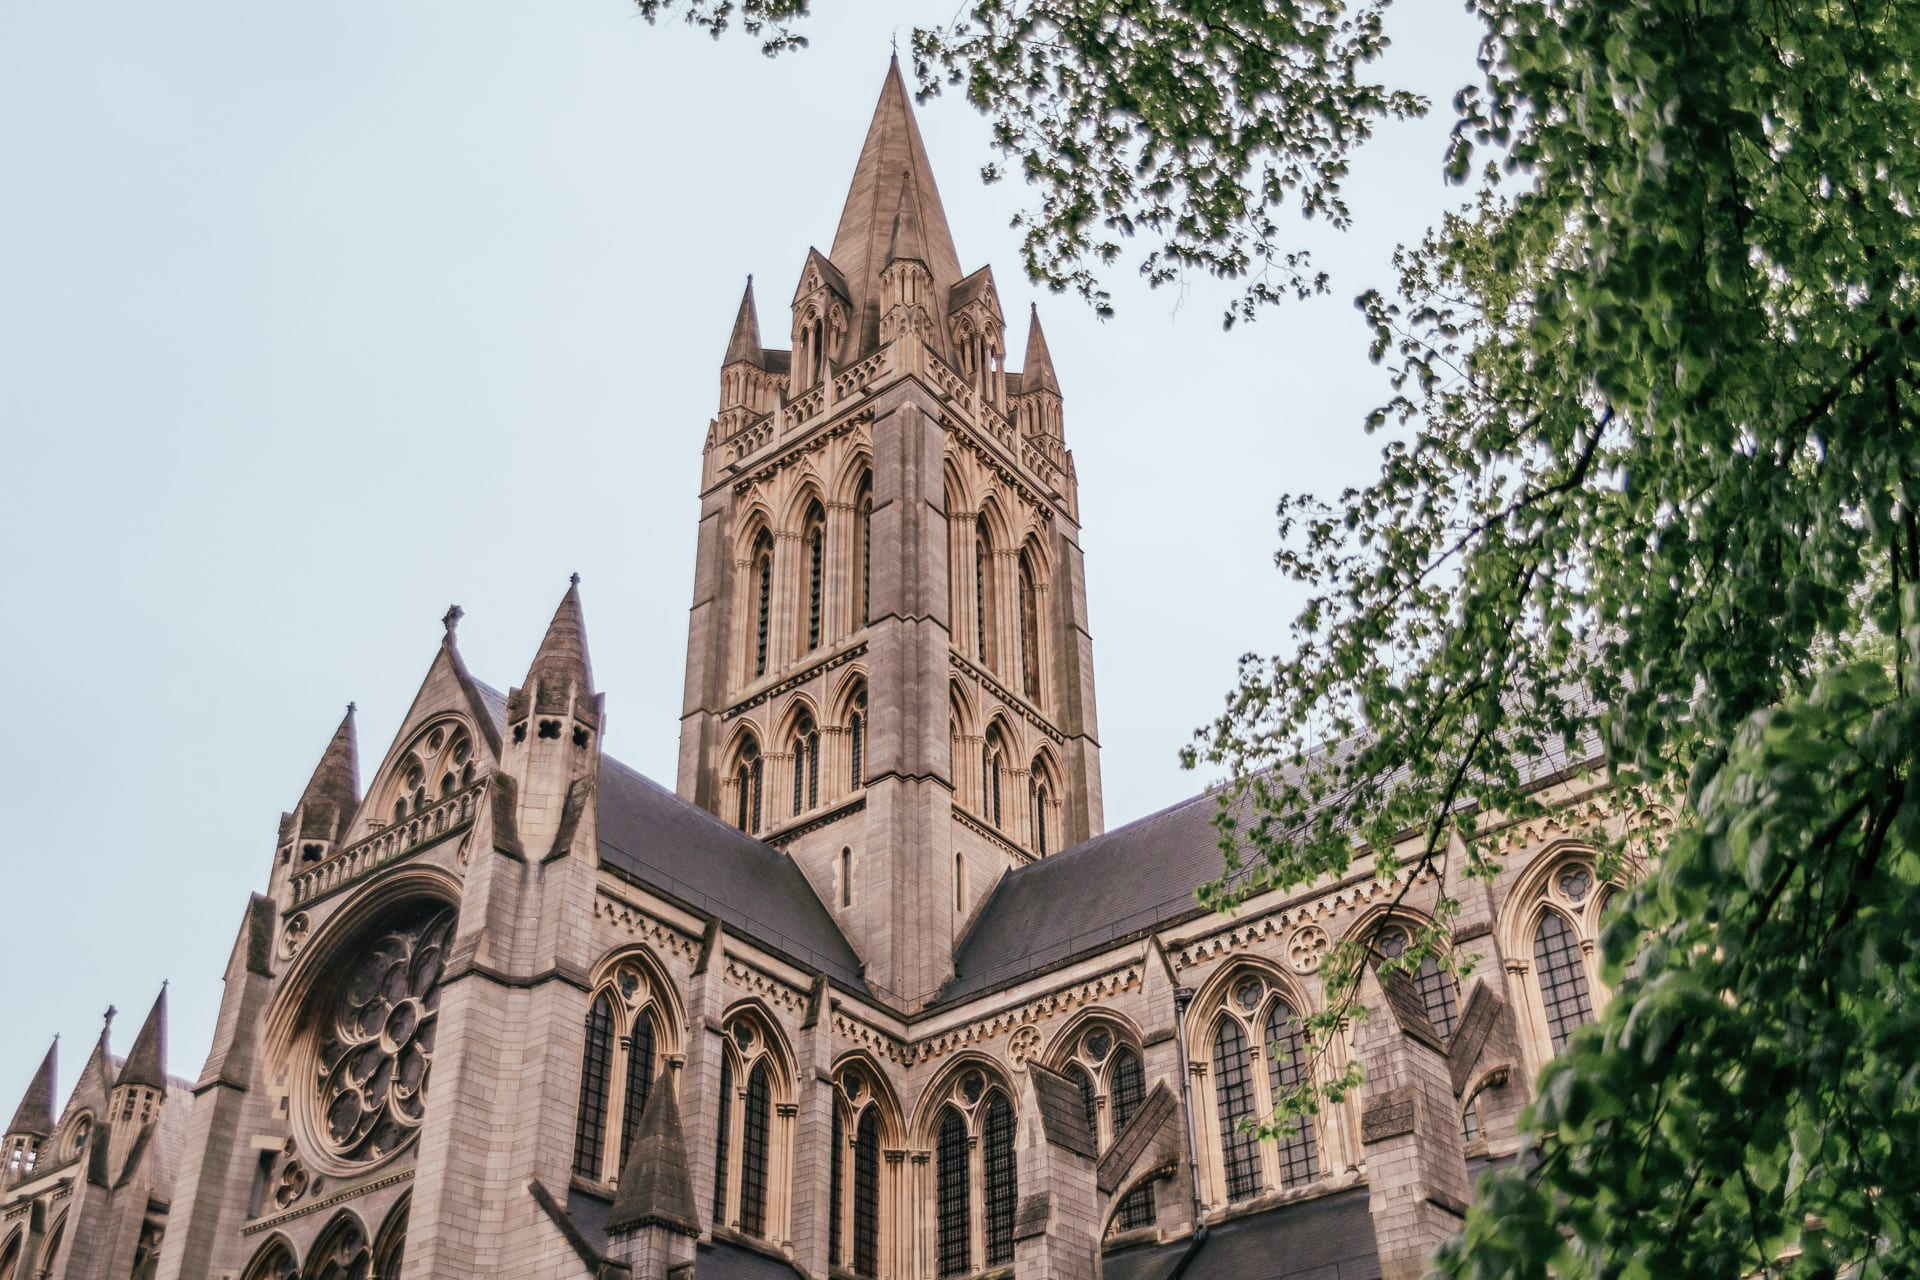 Truro Cathedral in Cornwall, England, UK